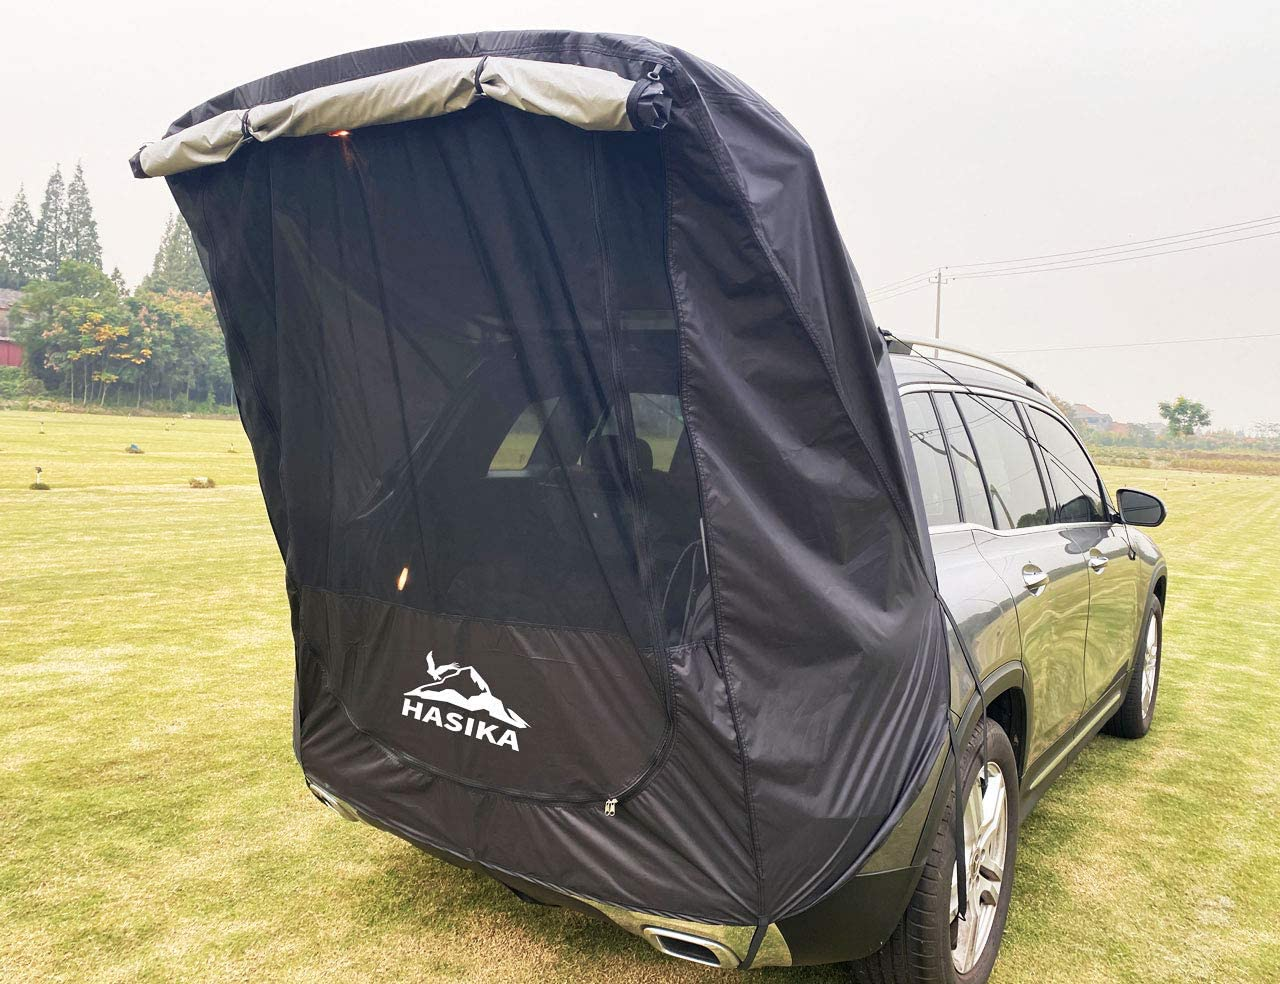 Hasika Tailgate Shade Awning Tent for Car Travel Small to Mid Size SUV Waterproof 3000MM Black